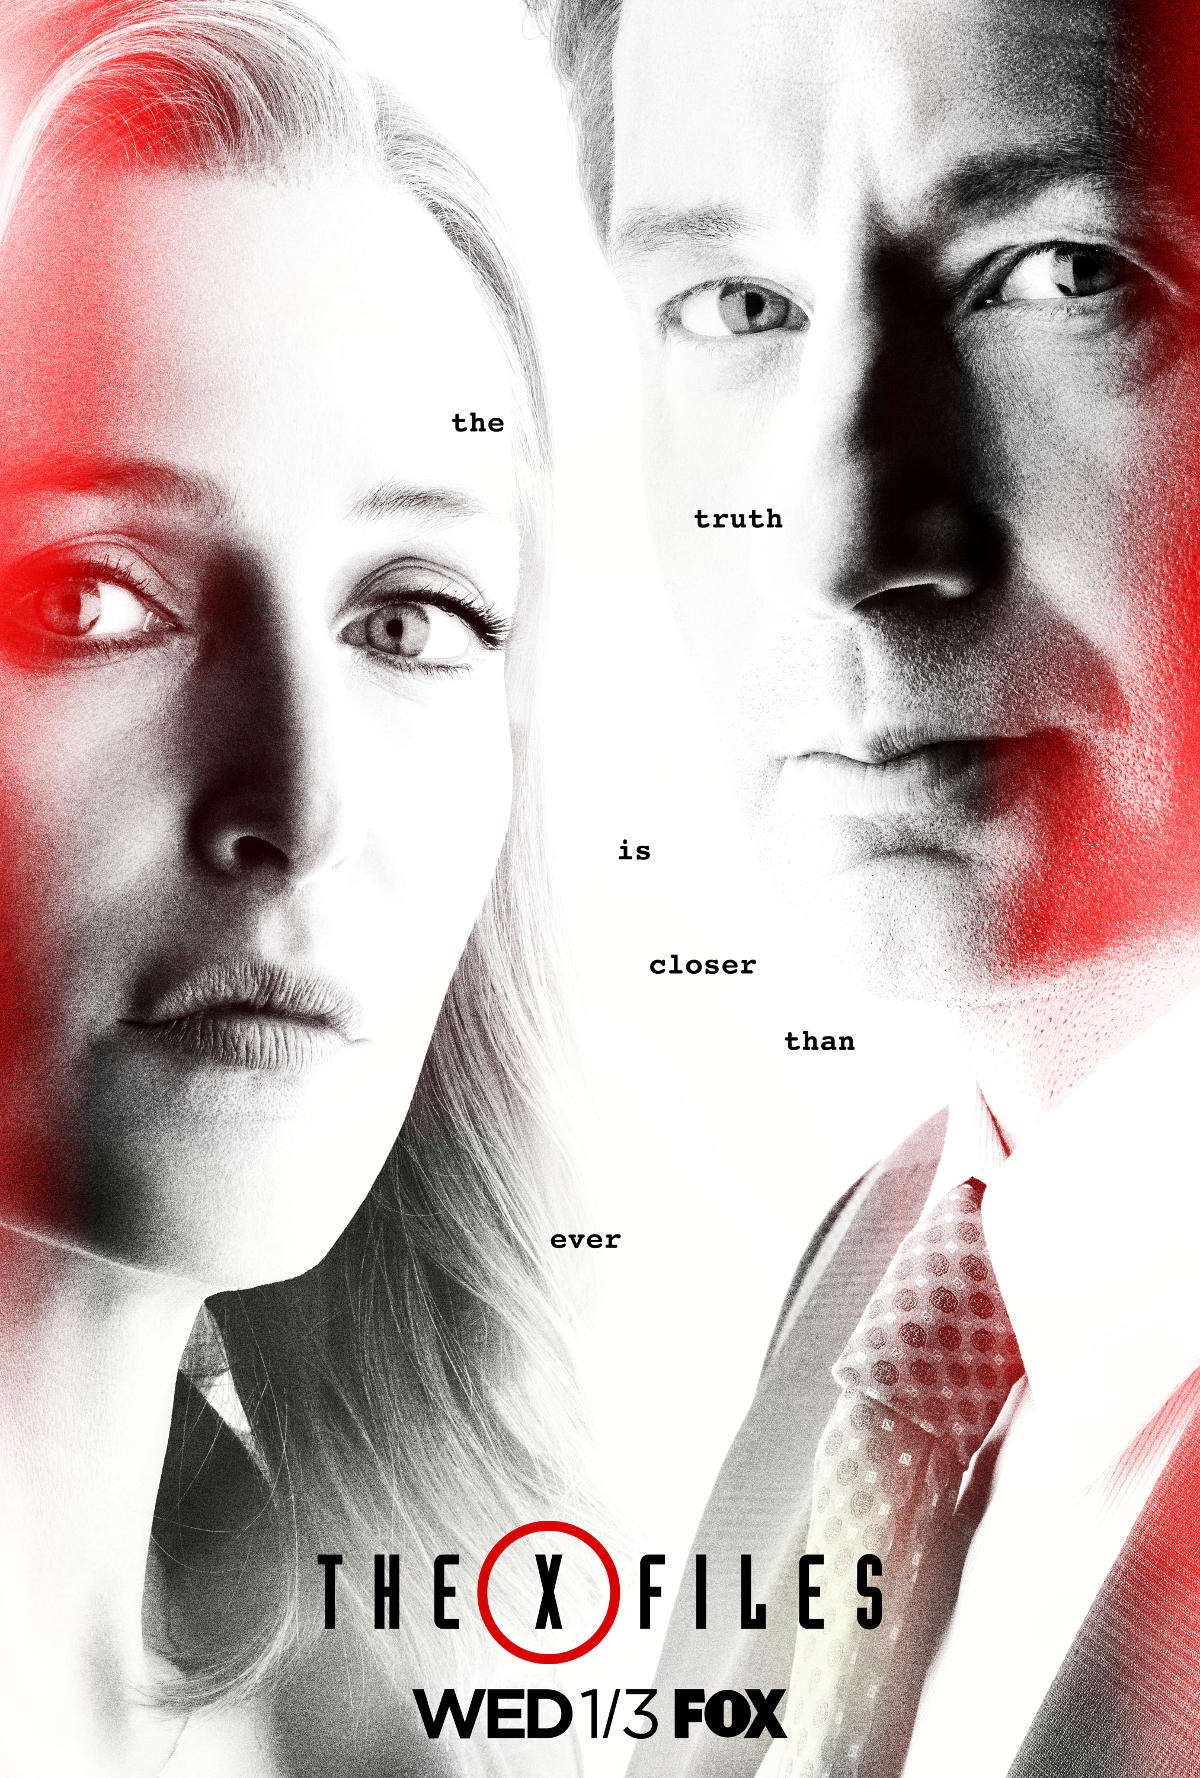 The X-Files - Season 11 (The New One) - Mp4 x264 AC3 1080p